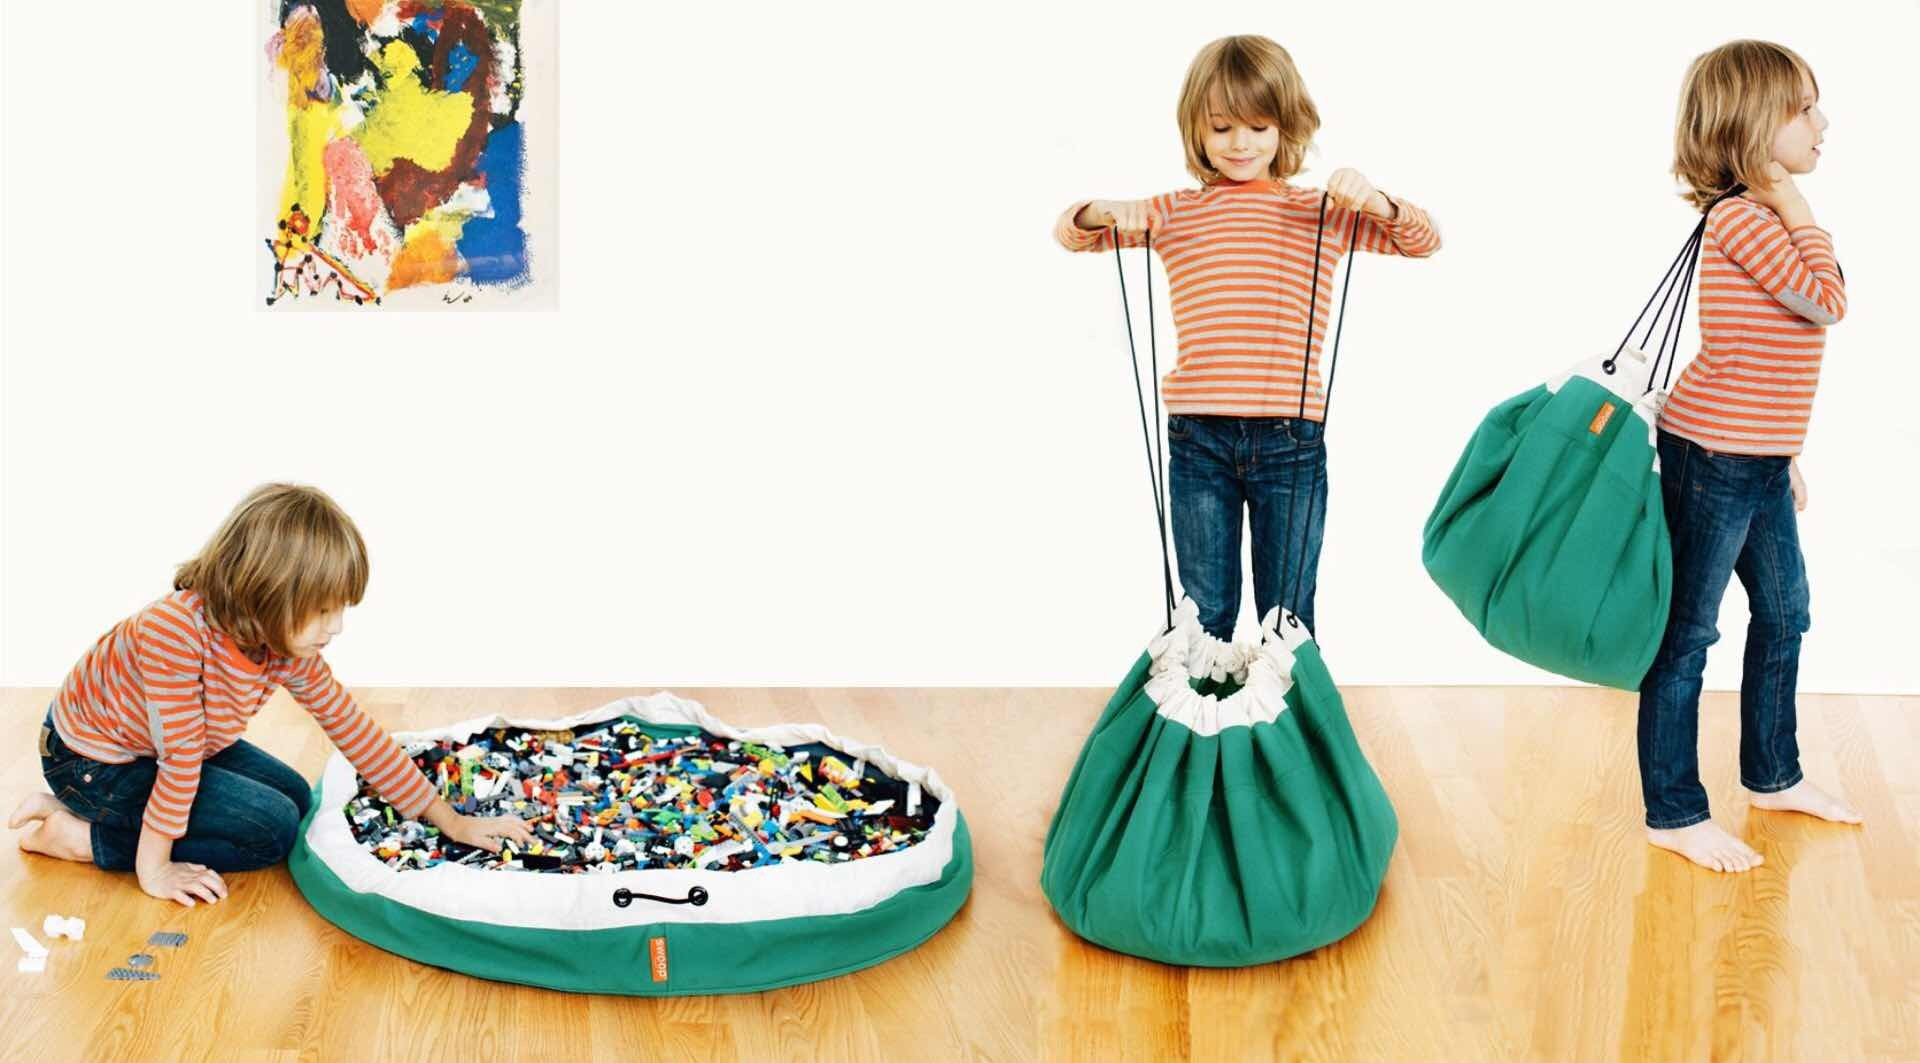 swoop-bags-toy-storage-bag-play-mat-2